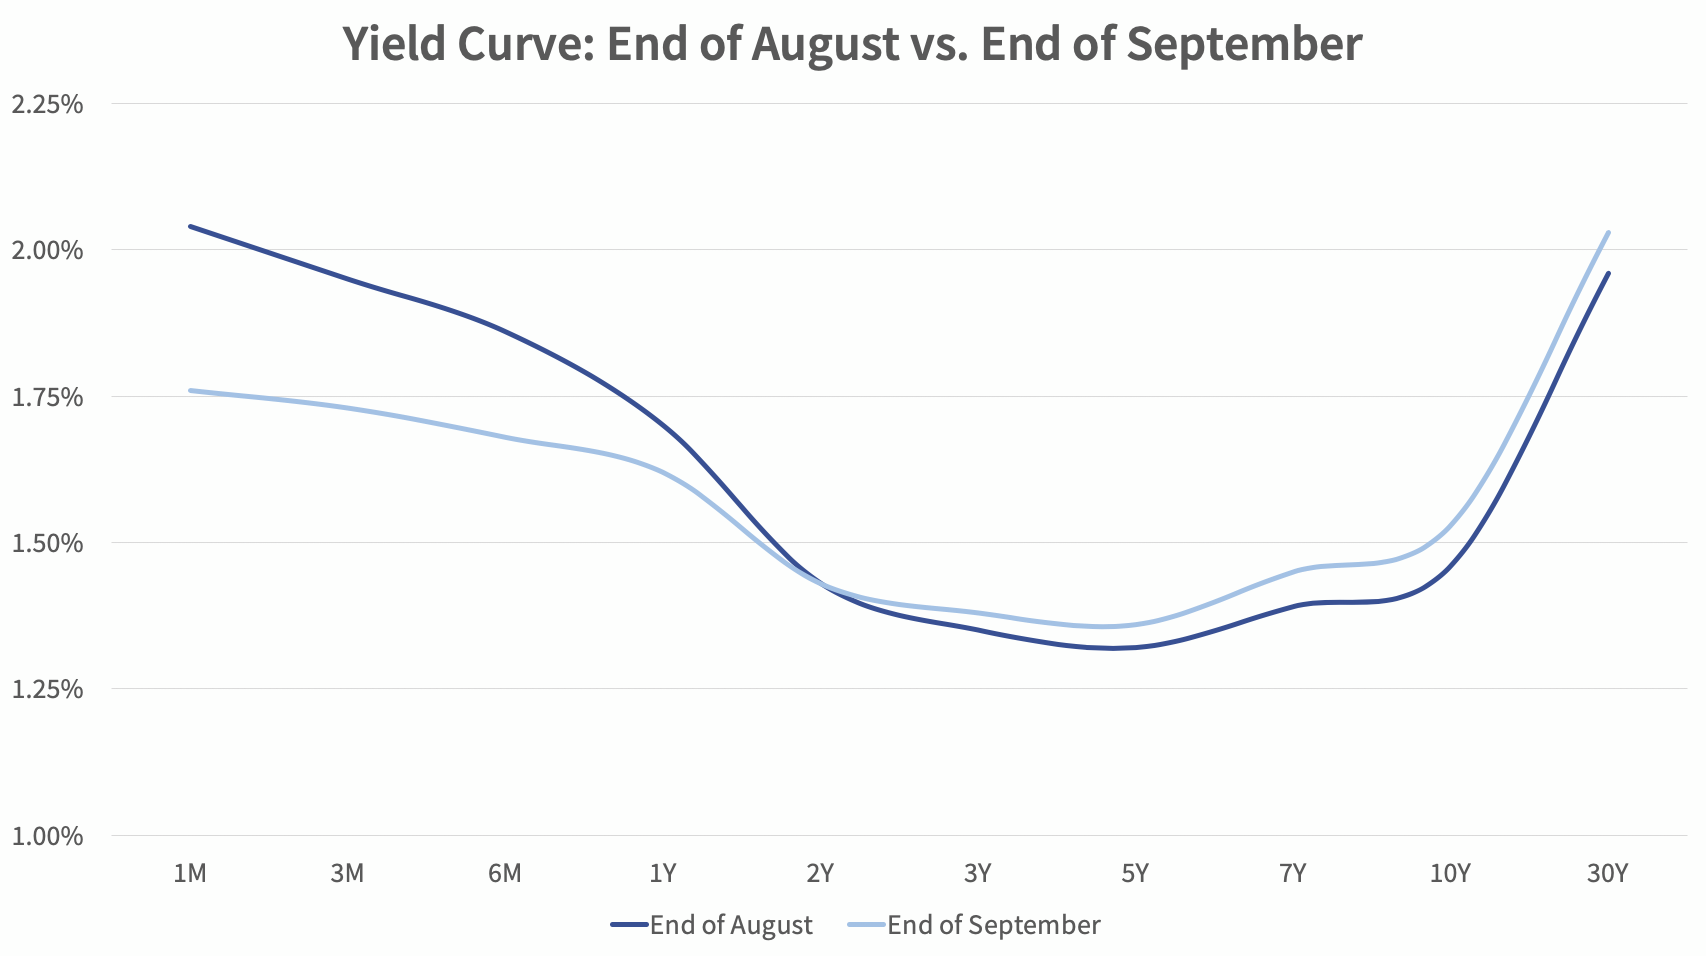 Yield Curve: End of August vs. End of September